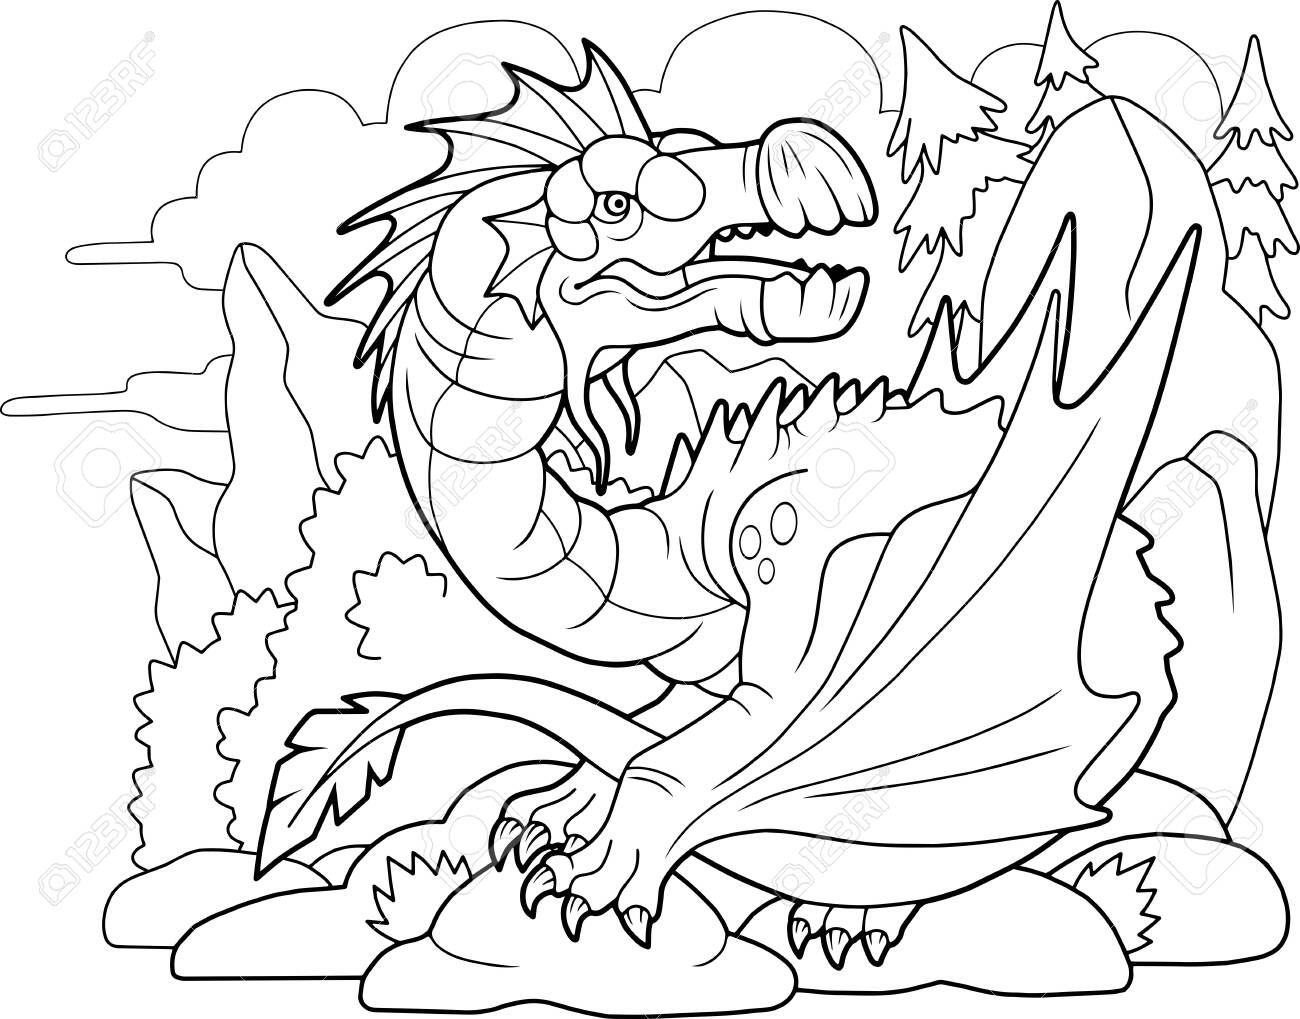 Cartoon Carnivorous Dragon Coloring Book Funny Illustration Royalty Free Cliparts Vectors And Stock Illustration Image 138596940